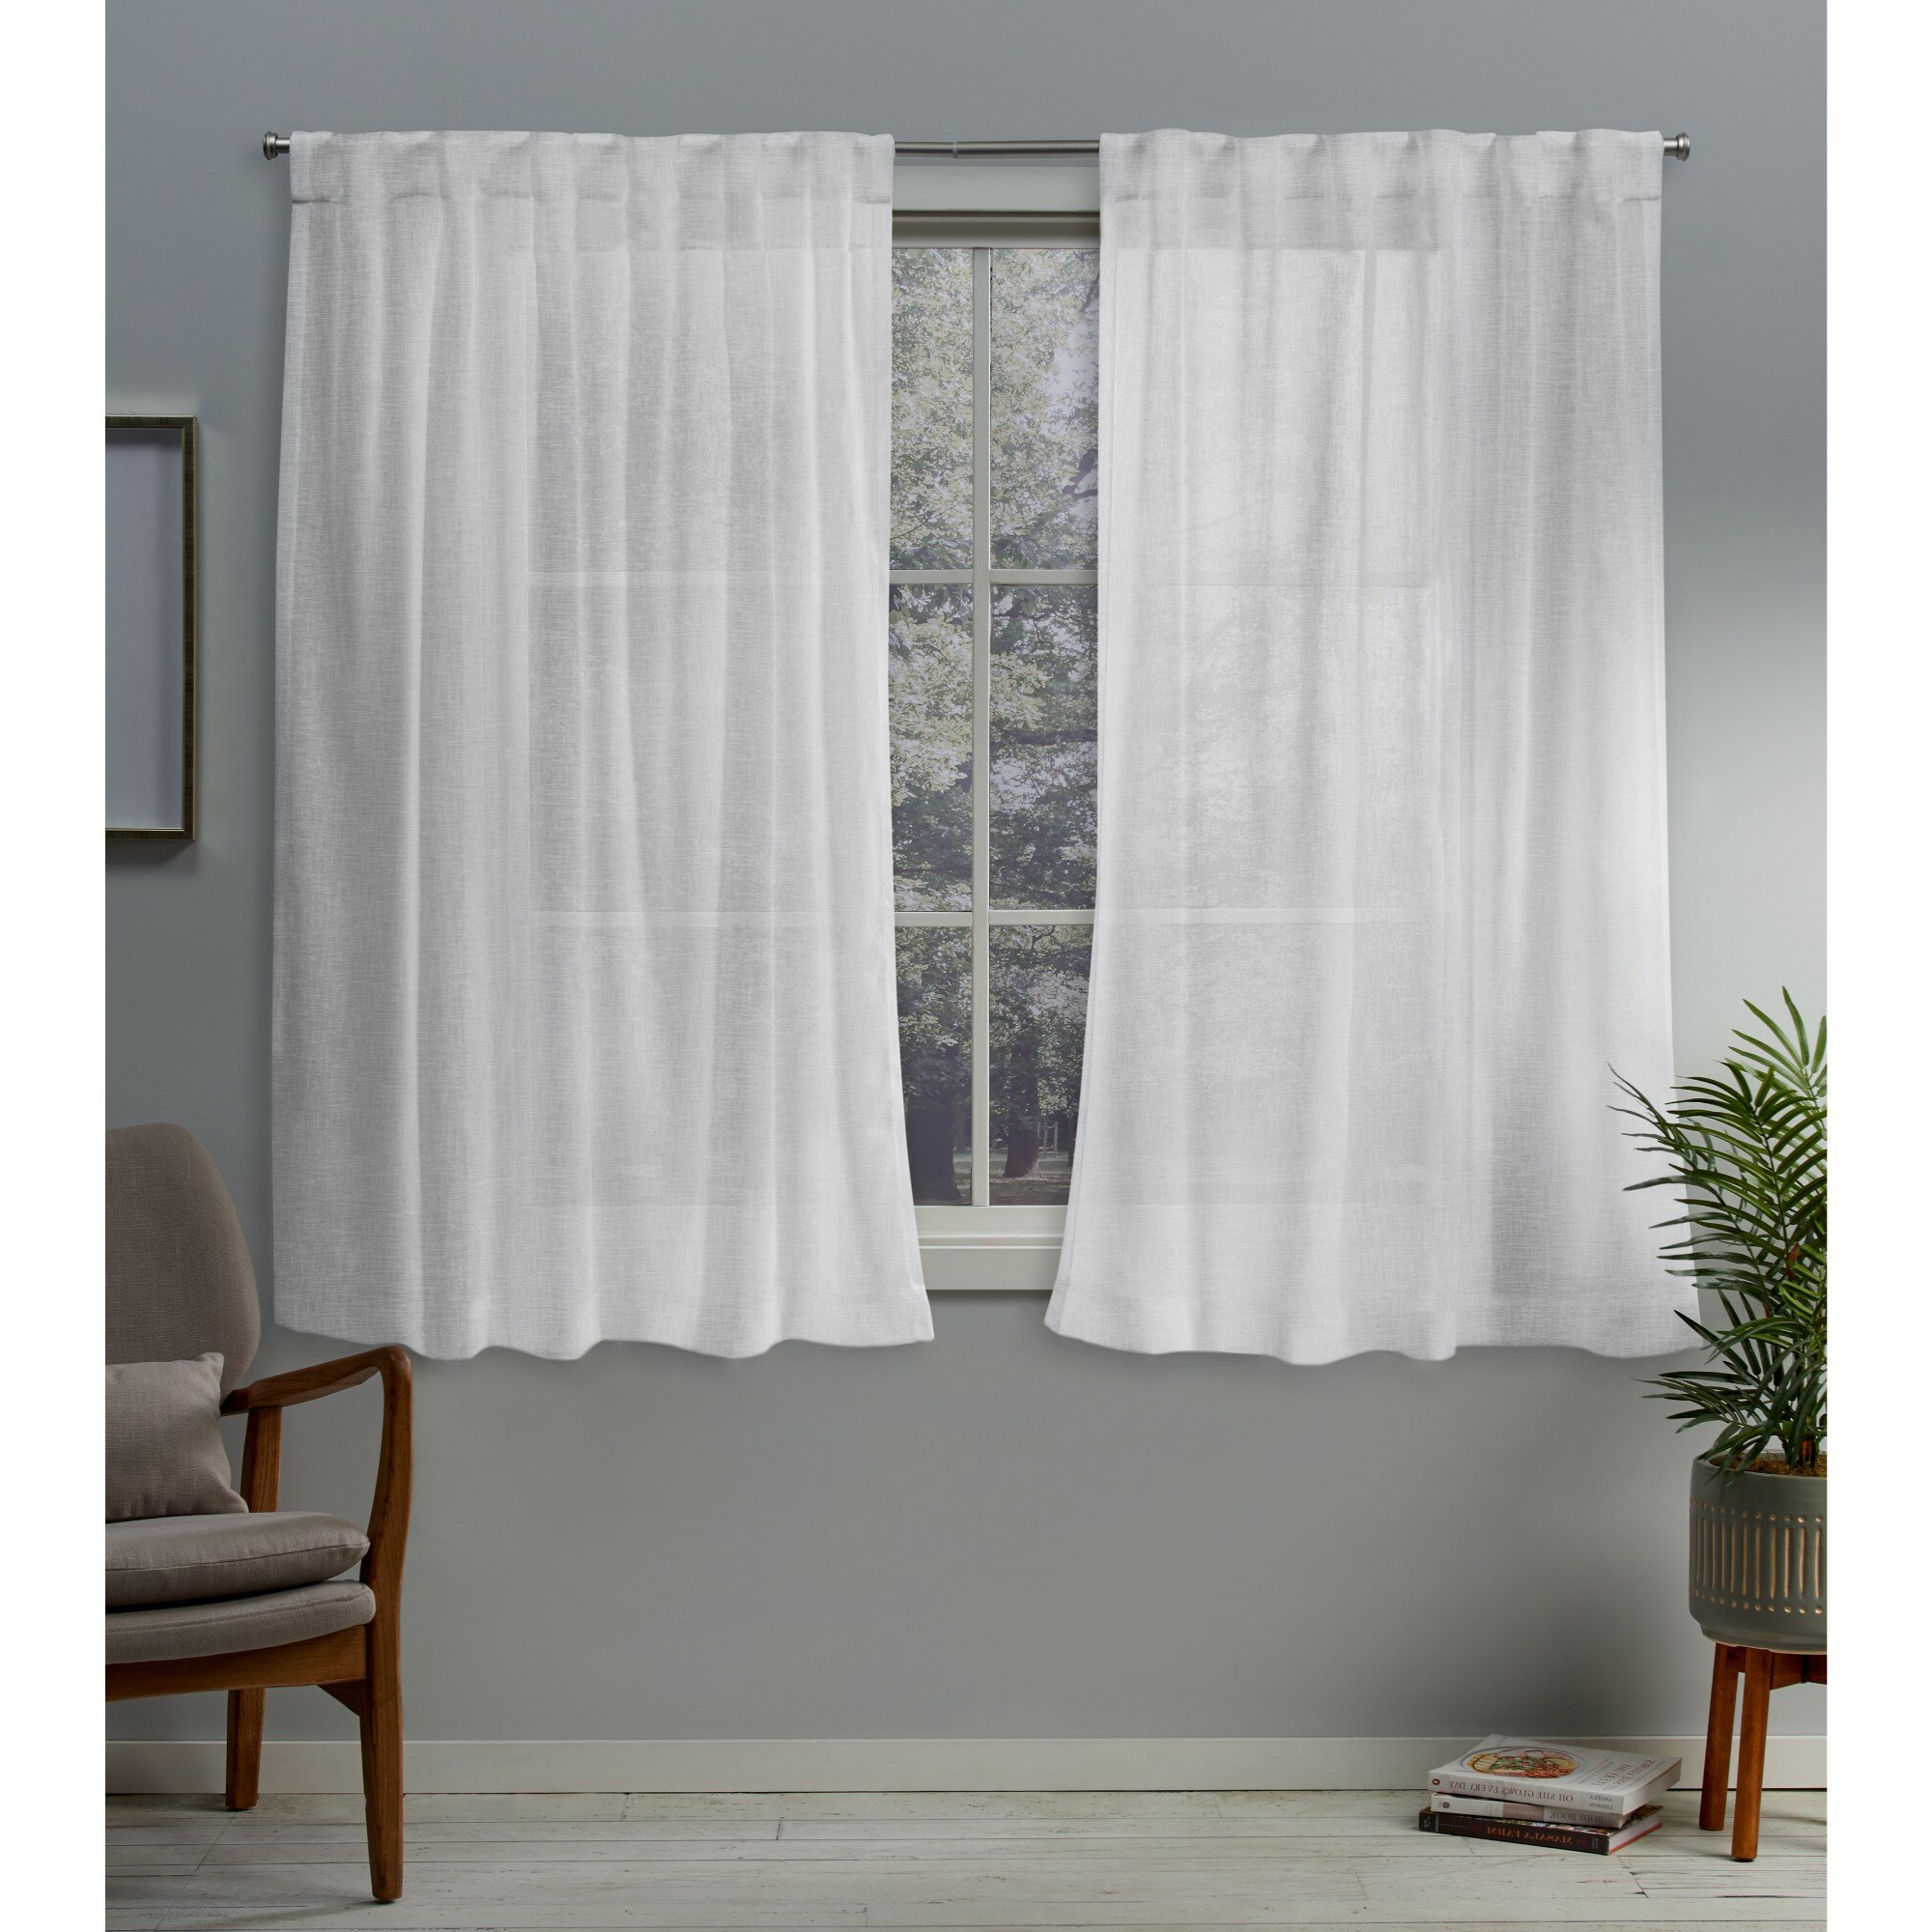 2020 Callanan Solid Sheer Pinch Pleat Panel Pair For Double Pinch Pleat Top Curtain Panel Pairs (View 20 of 20)